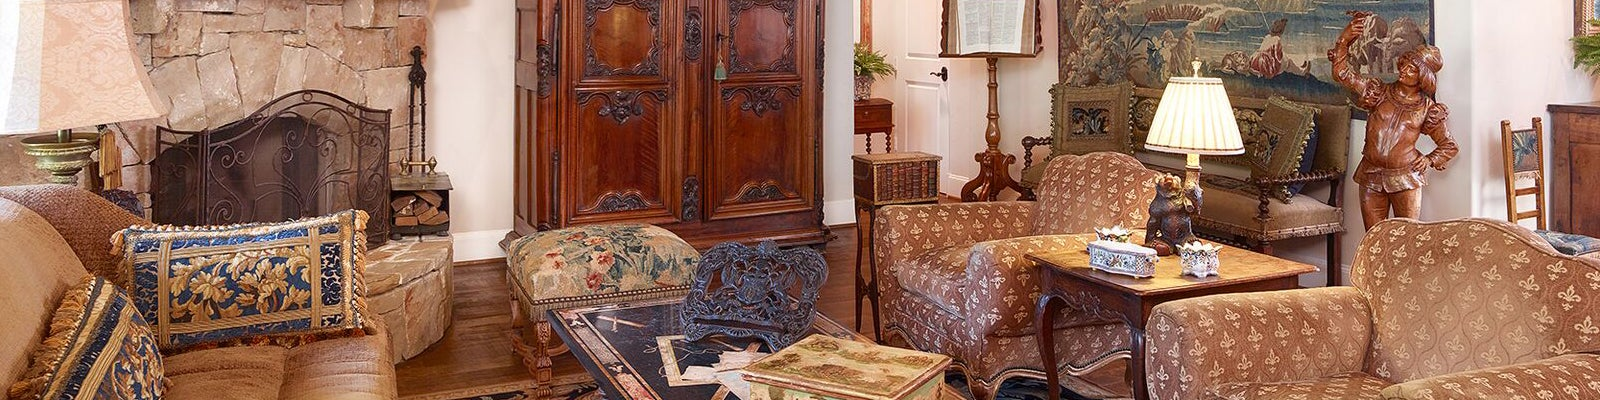 Country French Interiors Inc Dallas Tx 75207 1stdibs